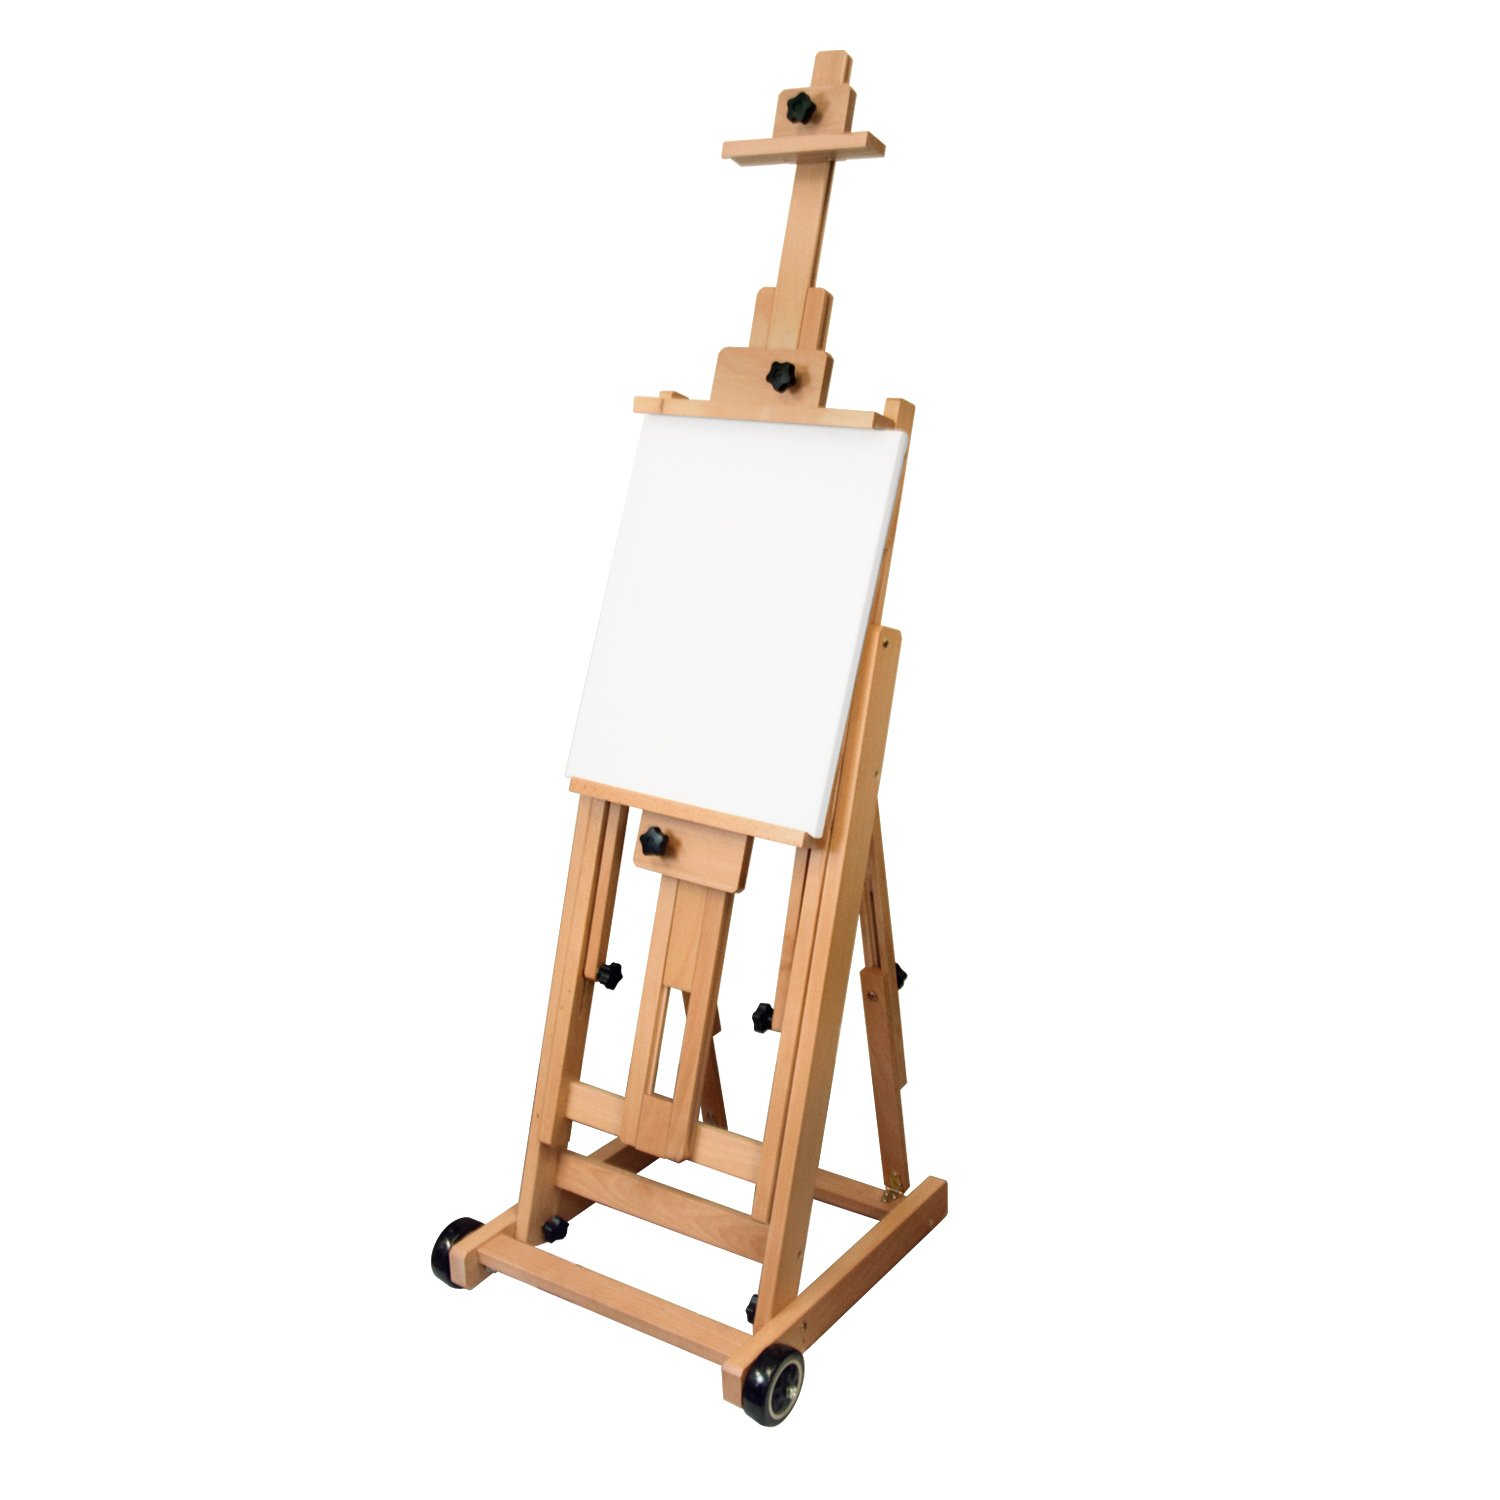 US Art Supply Master Multi-Function Studio Artist Wood Floor Easel, 19''Wide x 21''Deep x 56-1/2''High, (Adjusts to 97''High) by US Art Supply (Image #1)